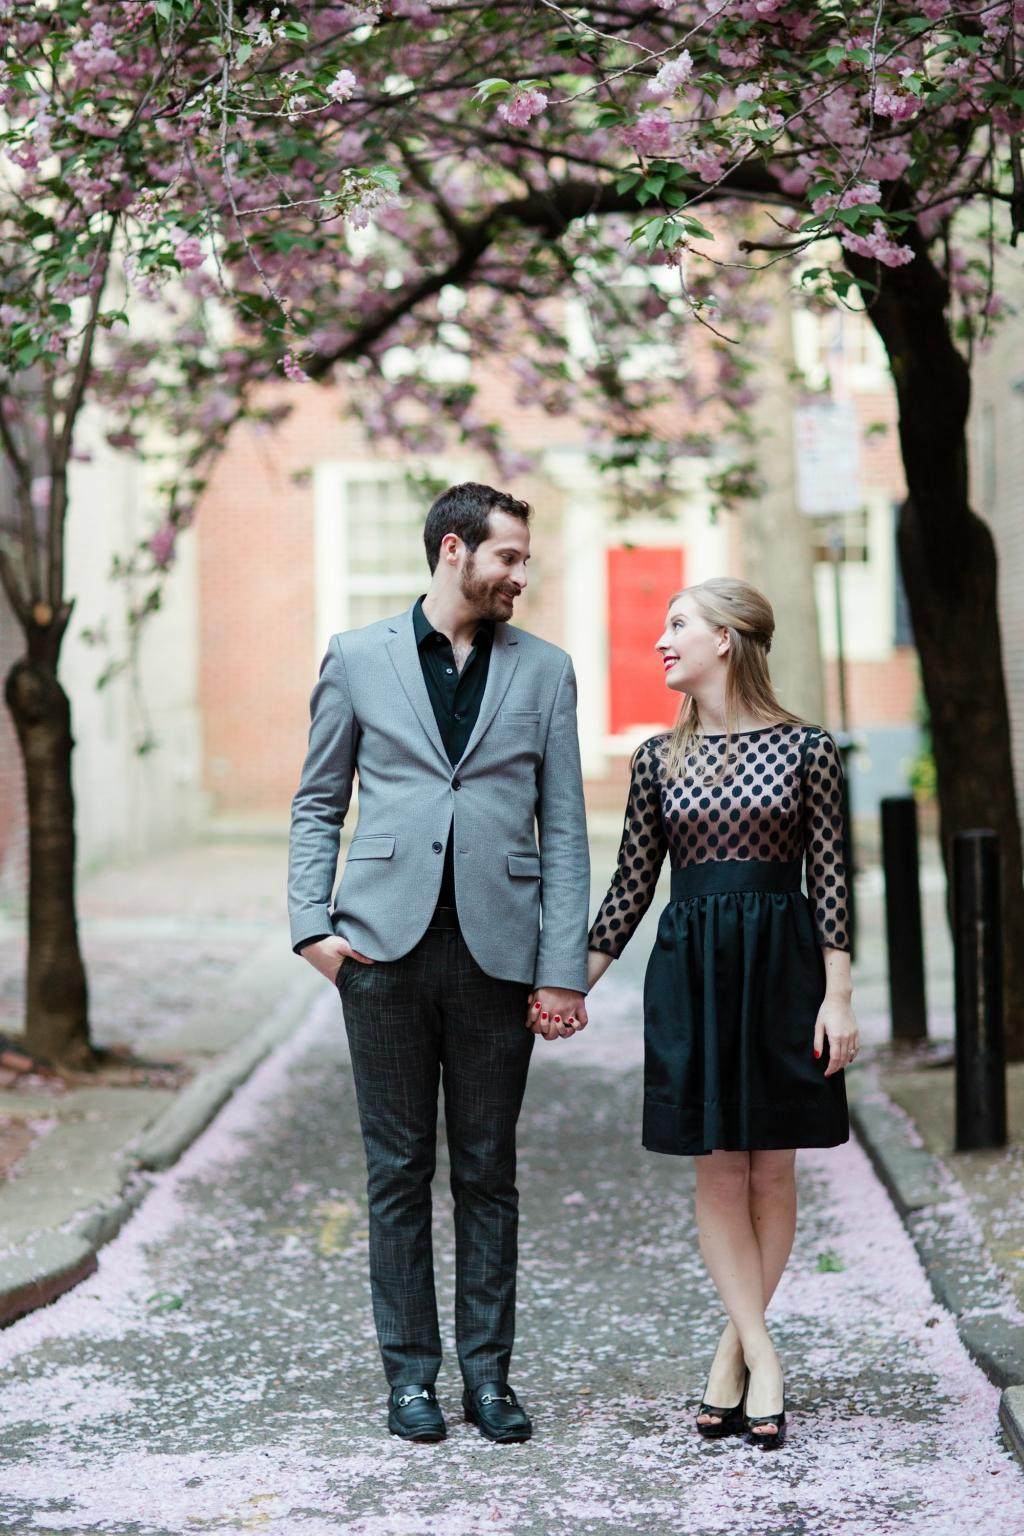 Charming Engagement Session in Philadelphia Asya Photography Philadelphia Photographer Philly In Love Philadelphia Weddings